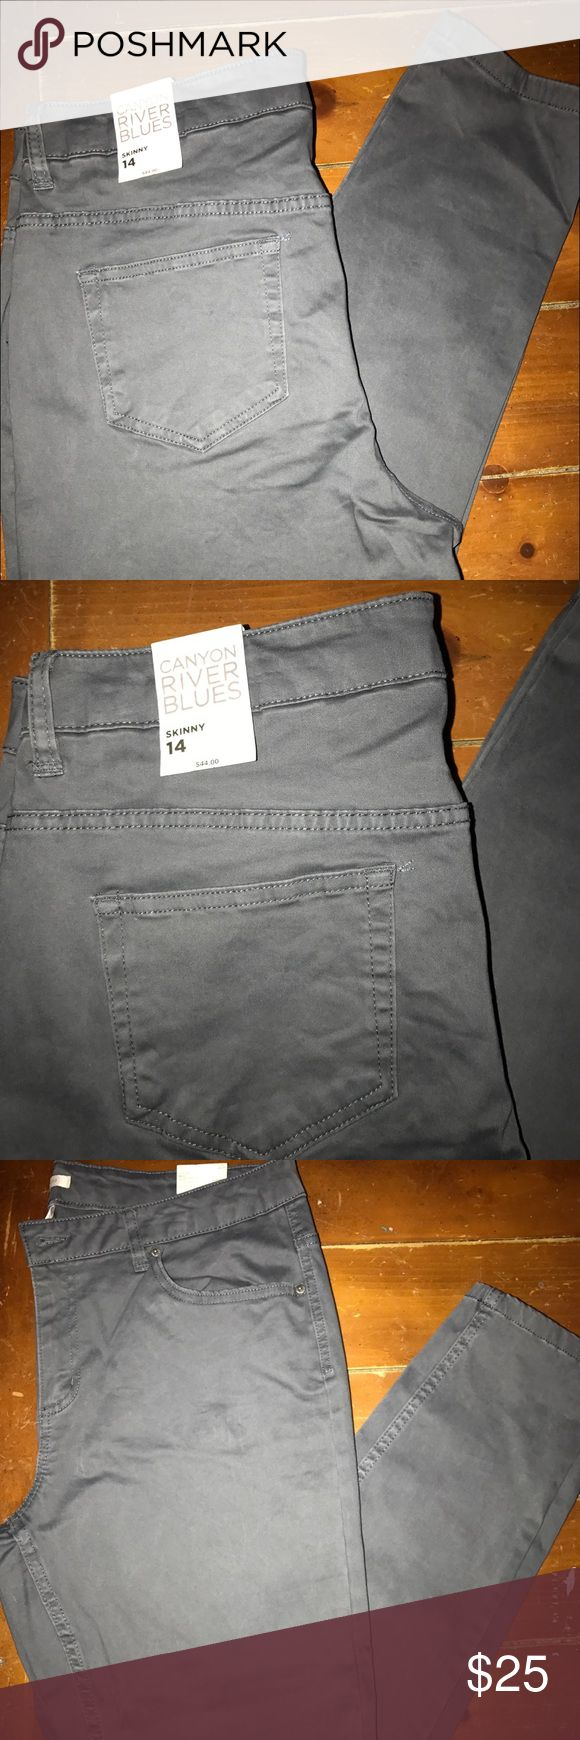 Canon river blue pants Grayish blue pants brand new with tags. Inseam is 27 inches. Canon River purchased at Sears Pants Skinny